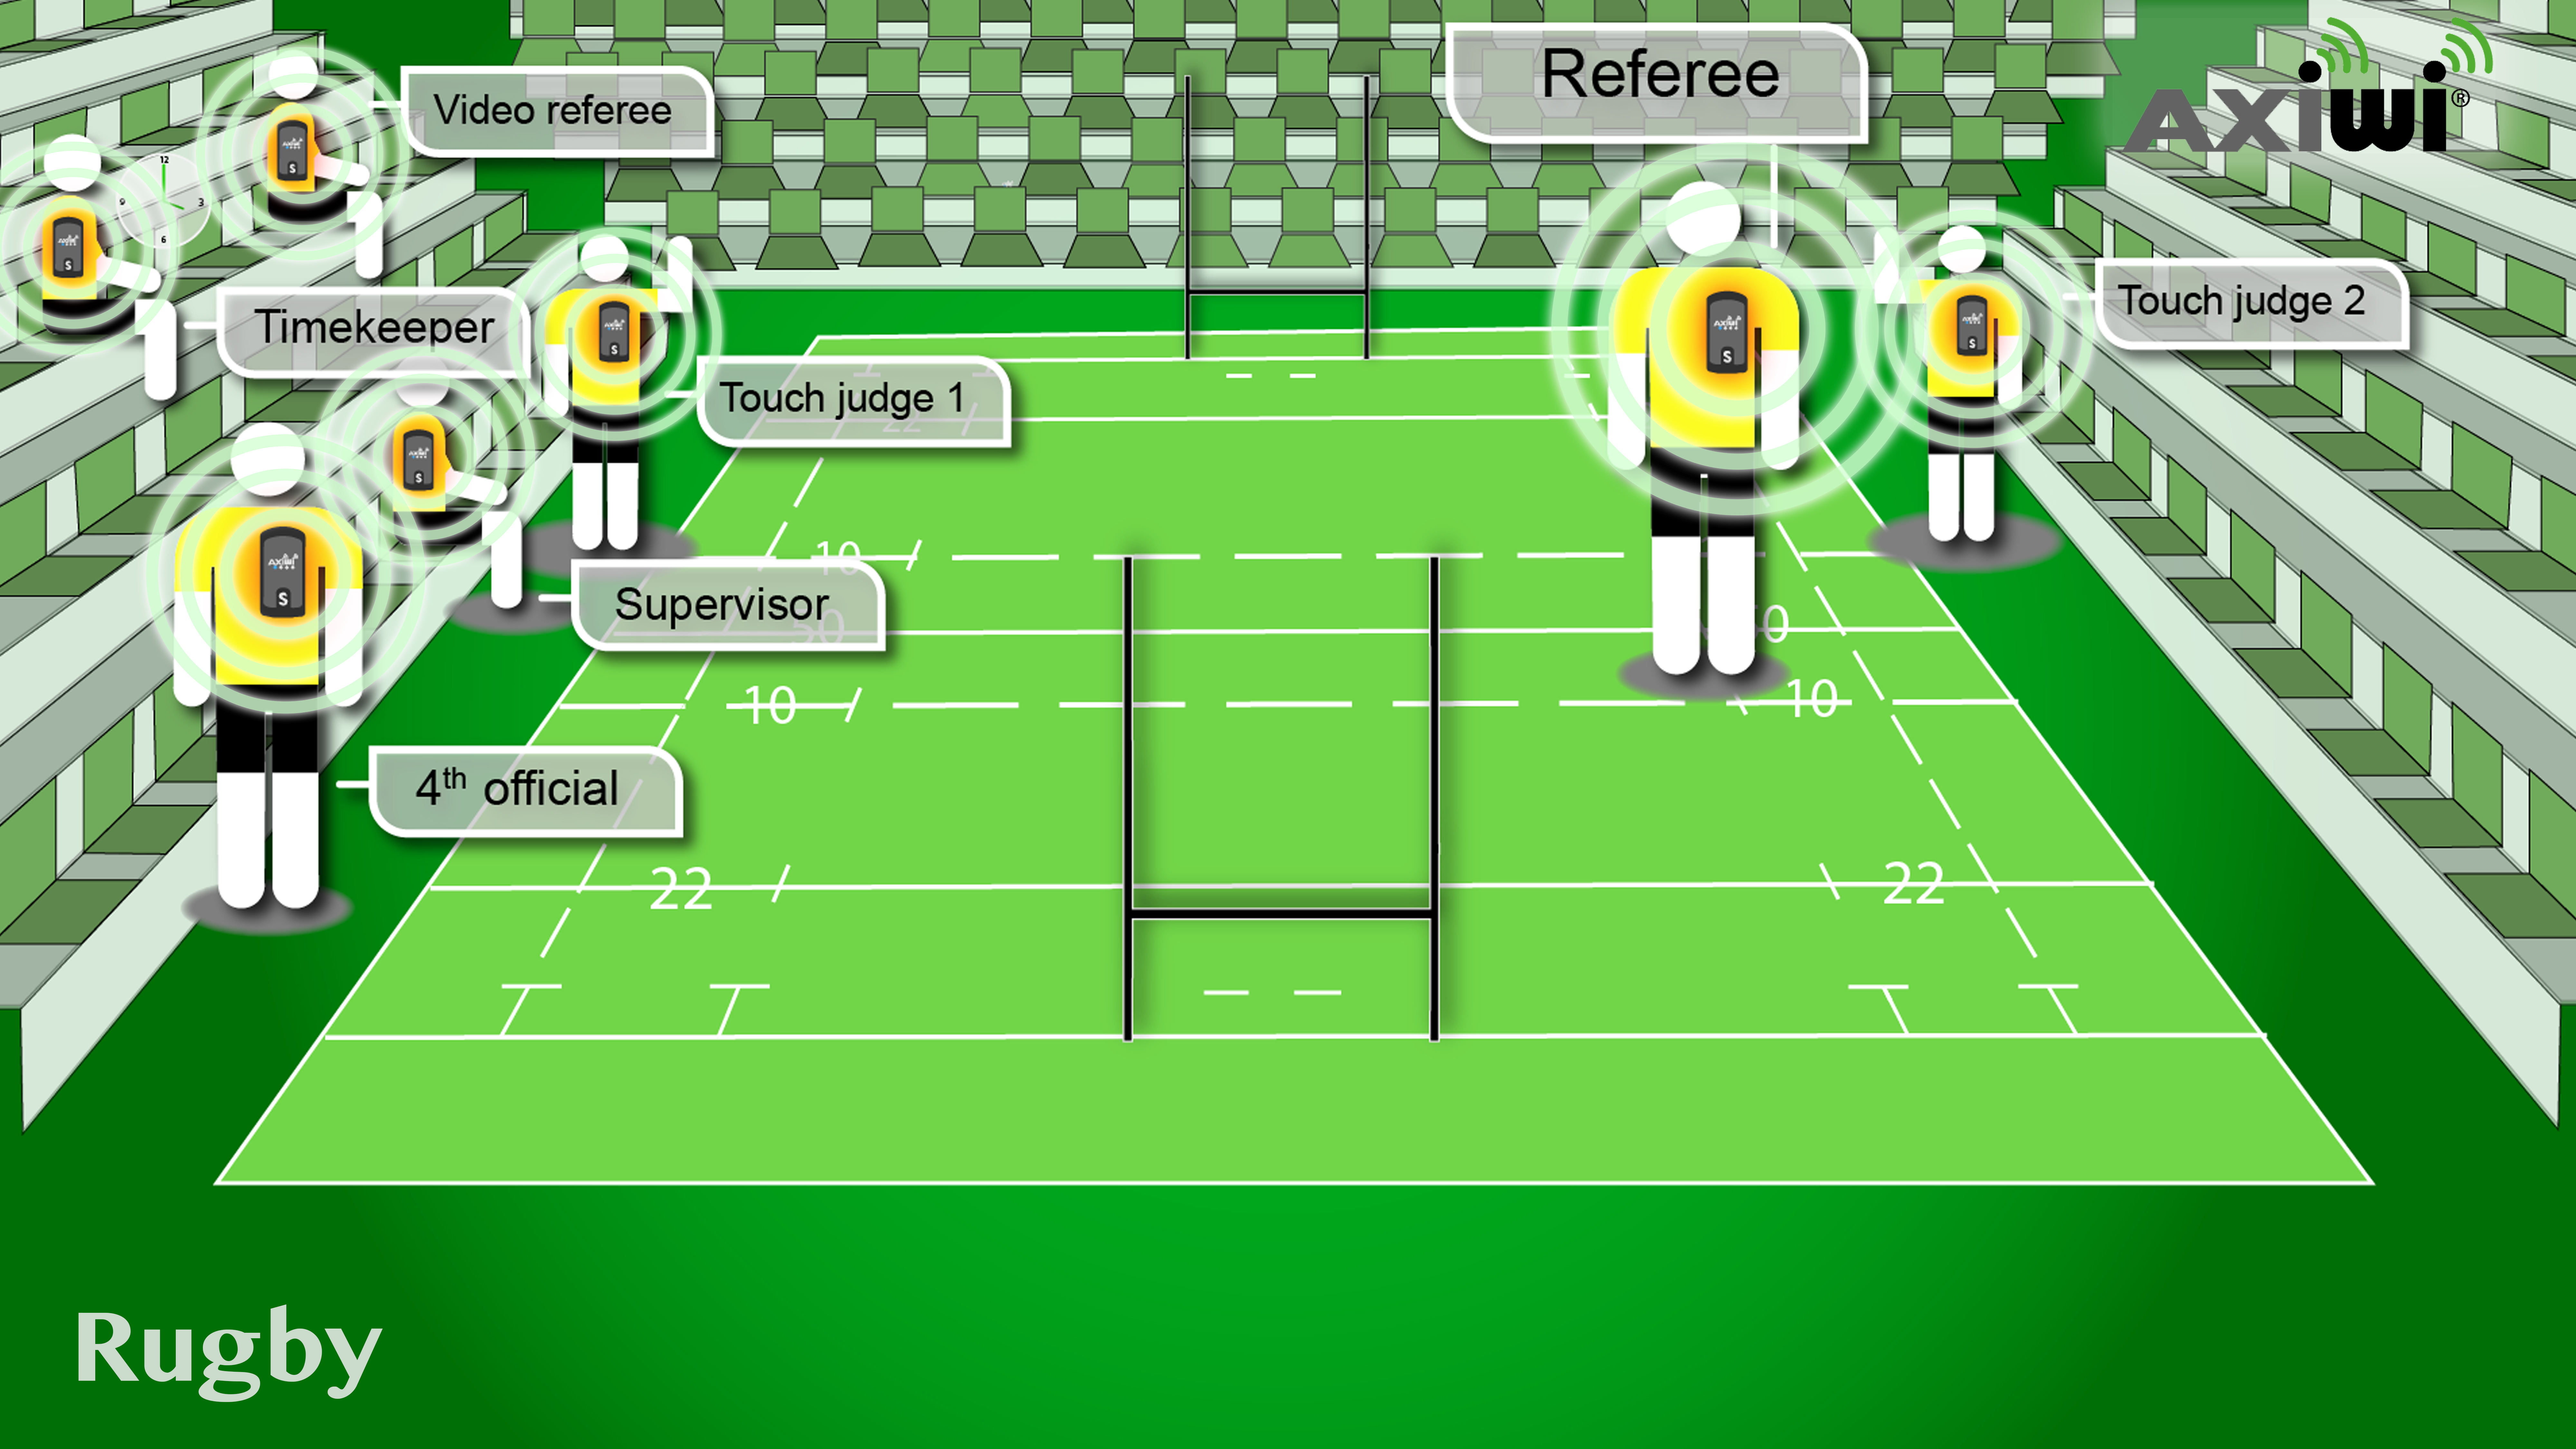 /axiwi-communication-system-referee-rugby